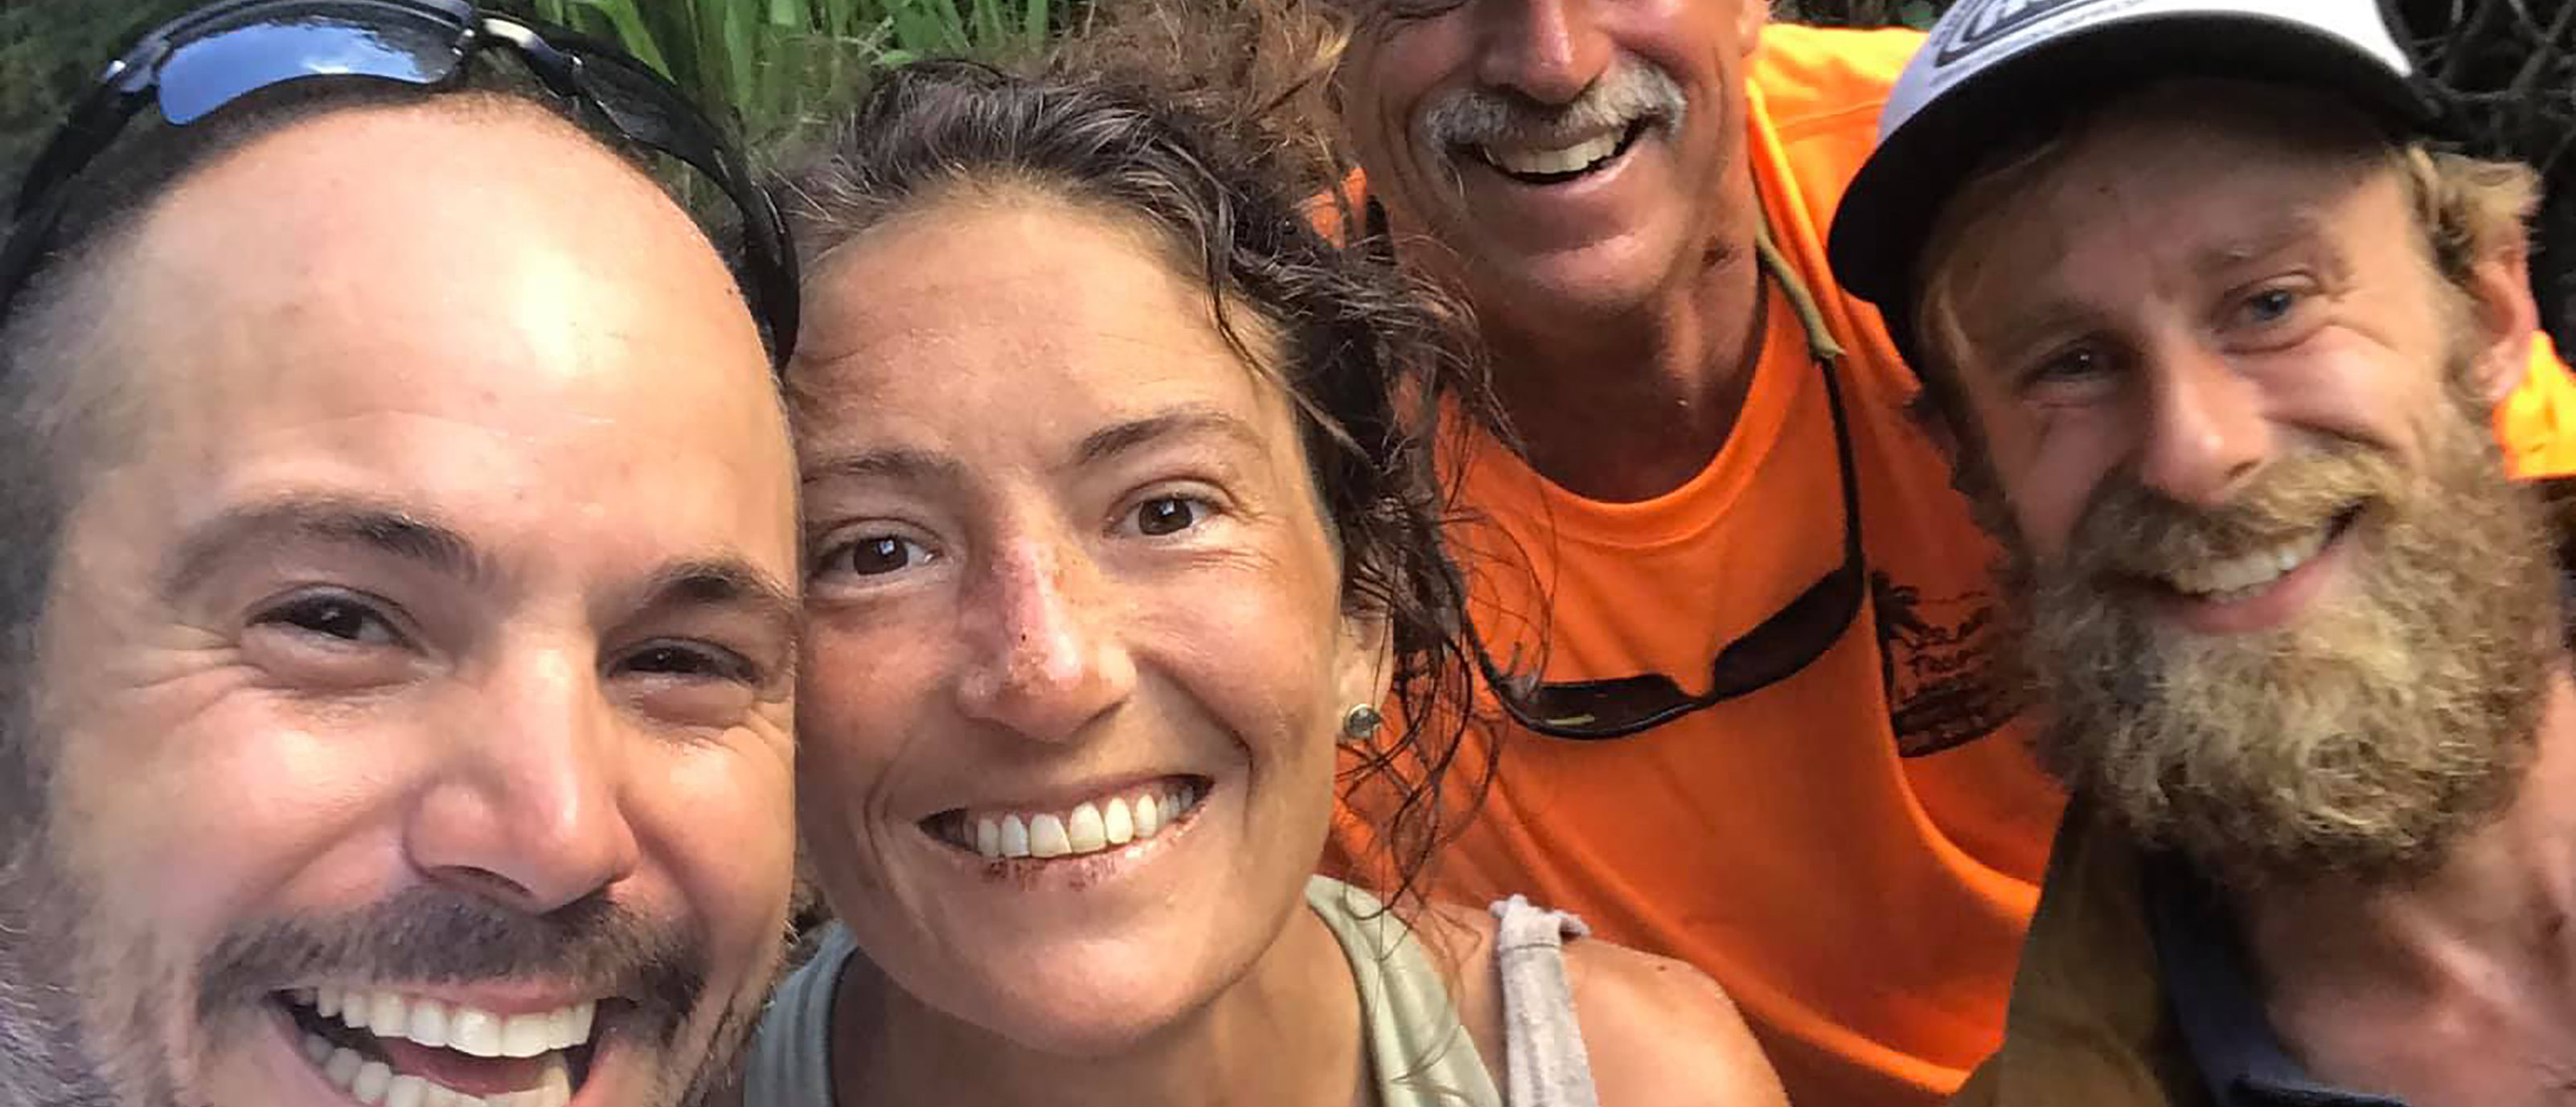 This image courtesy of Javier Cantellops and obtained at facebook.com/AmandaEllersMissing/, shows missing hiker Amanda Eller (2nd L) with her rescuers, (L-R) Javier Cantellops, Troy Helmer and Chris Berquist, on May 24, 2019, at Makawao Forest Reserve on the Hawaiian Island of Maui. (JAVIER CANTELLOPS/AFP/Getty Images)